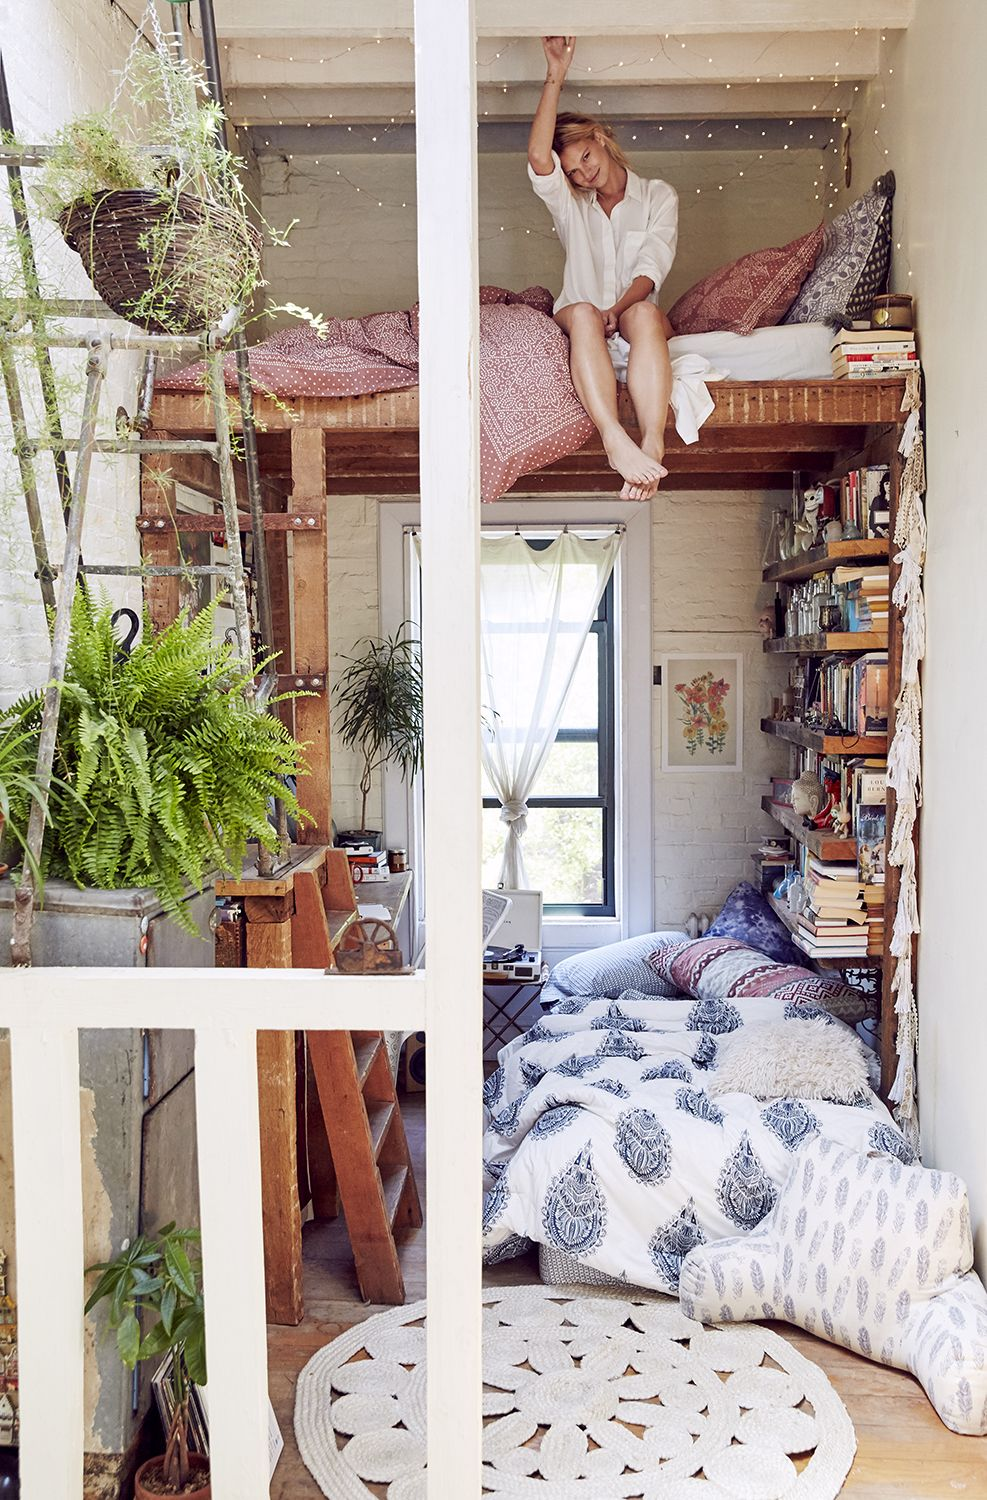 Lush Hippie Chic Boho Bunk Bed Loft Lounge Library With Secret Art Studio  Closet Part 66